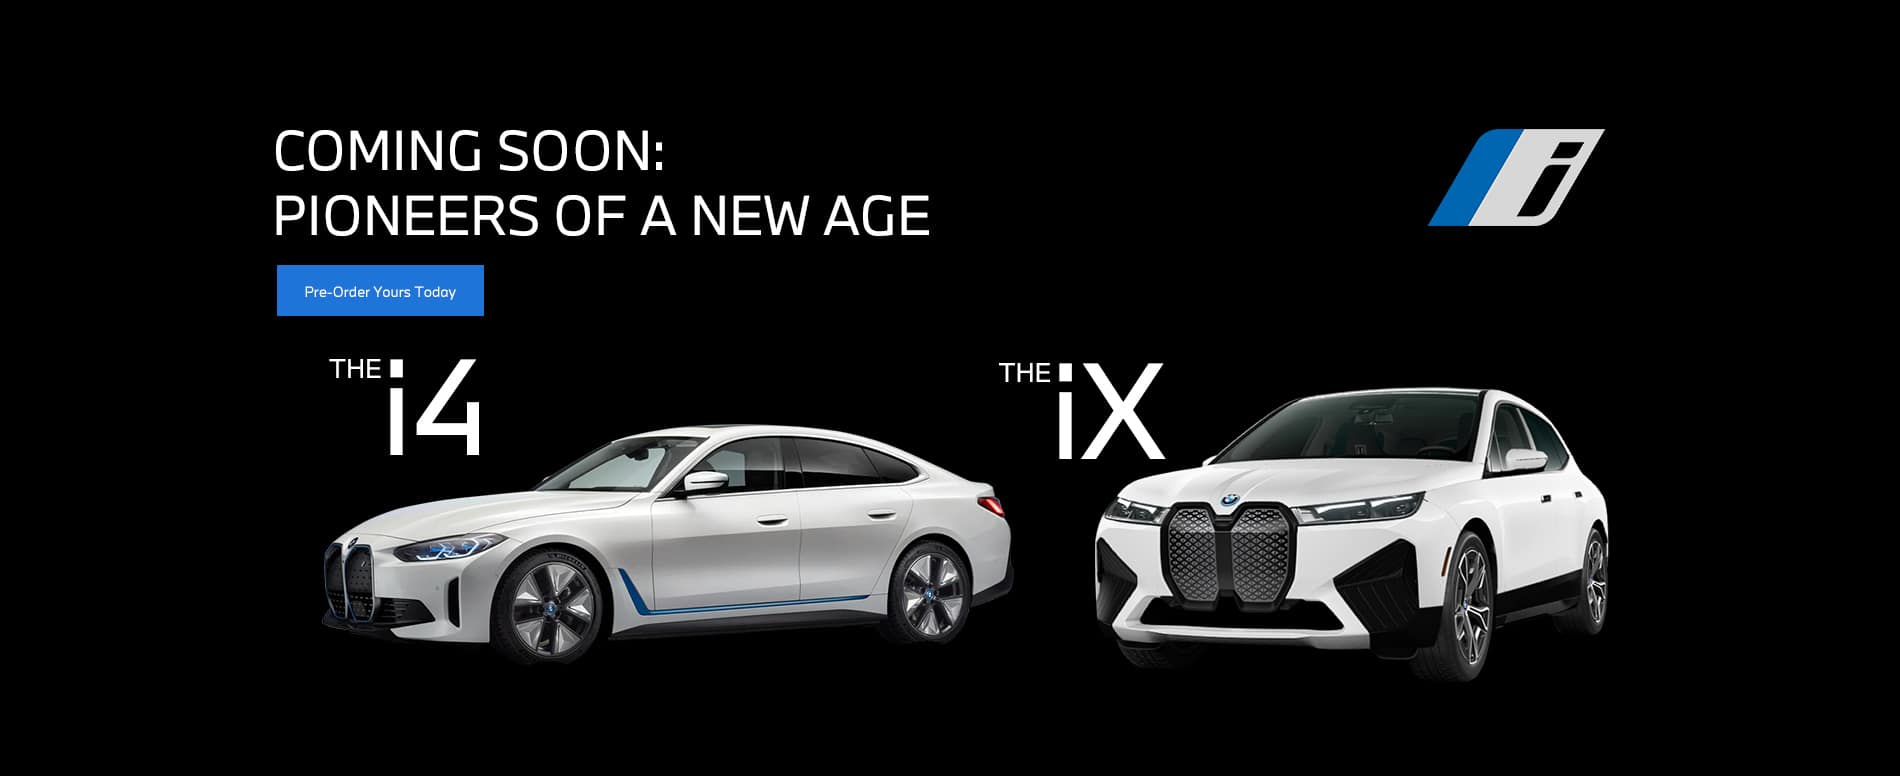 Coming soon: the pioneers of a new age with the new BMW i4 and iX electric vehicles